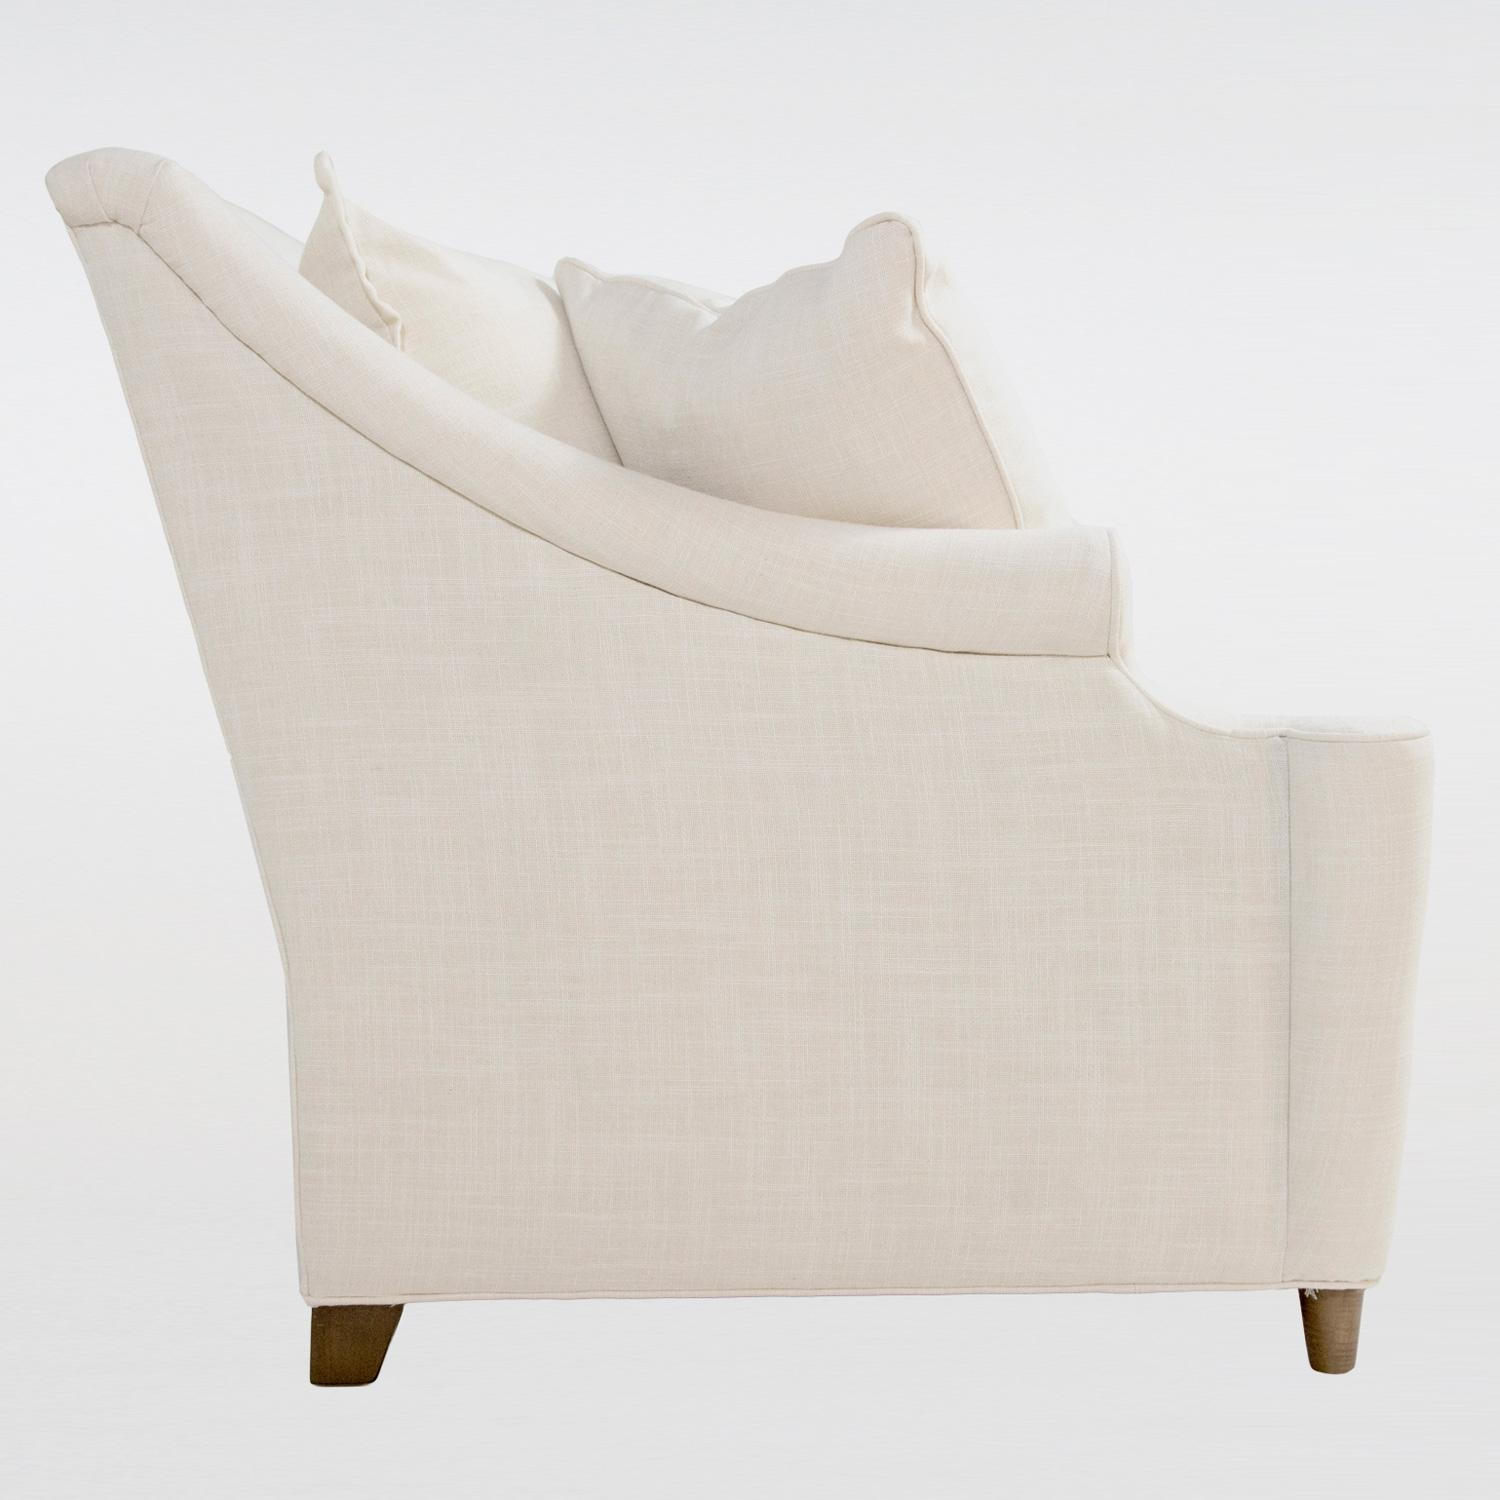 Gabby Furniture Theo Bench Cushion Sofa Intended For Bench Cushion Sofas (Image 10 of 20)